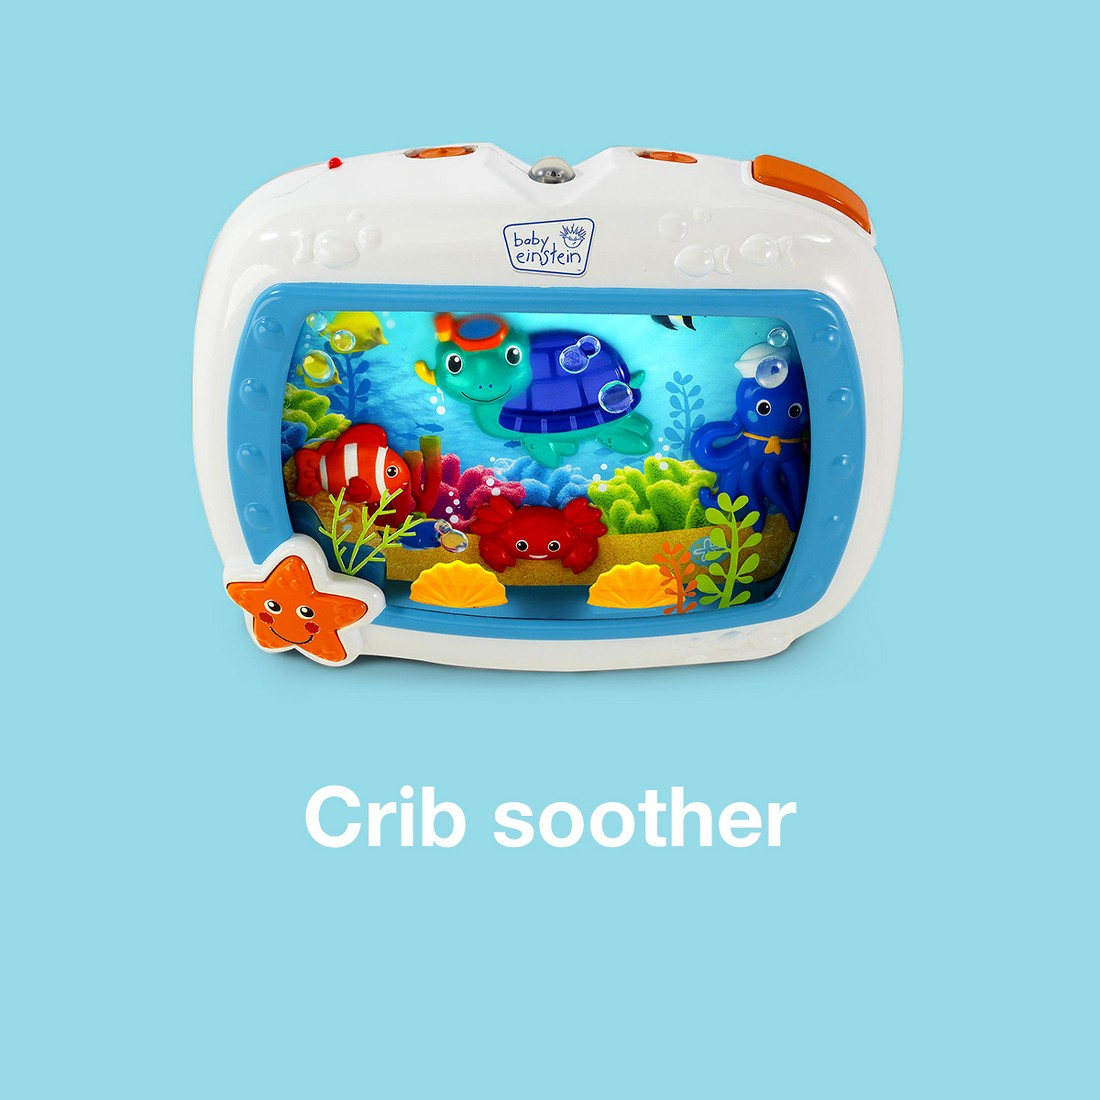 cribsoother